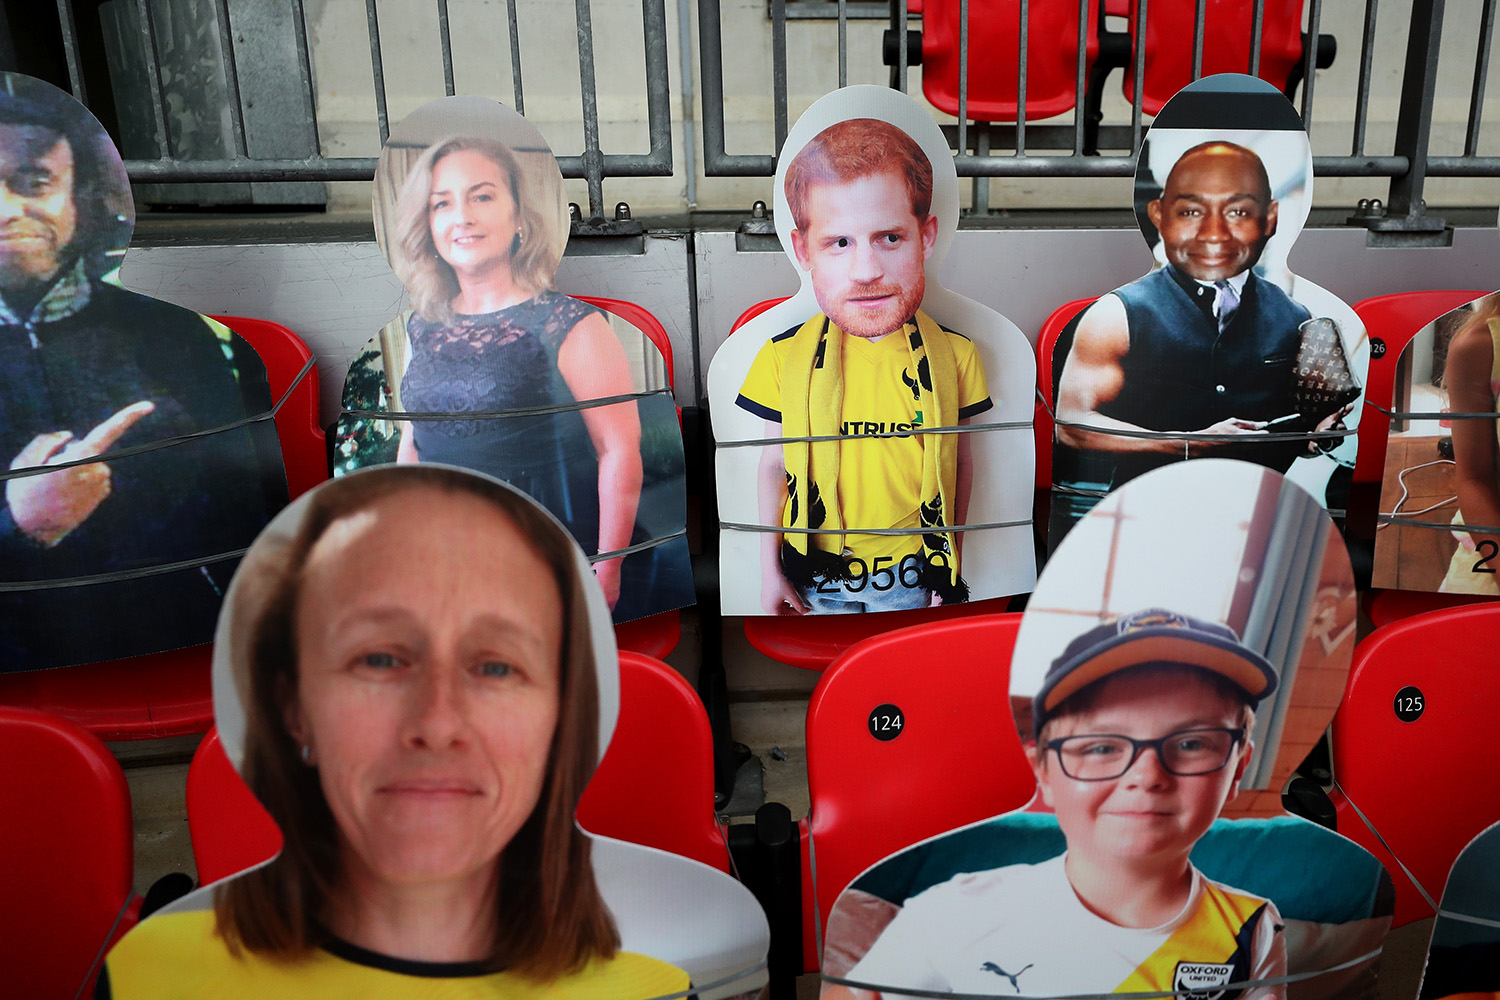 Cardboard cutout fans, including one of Prince Harry, at a English soccer match during coronavirus restrictions.